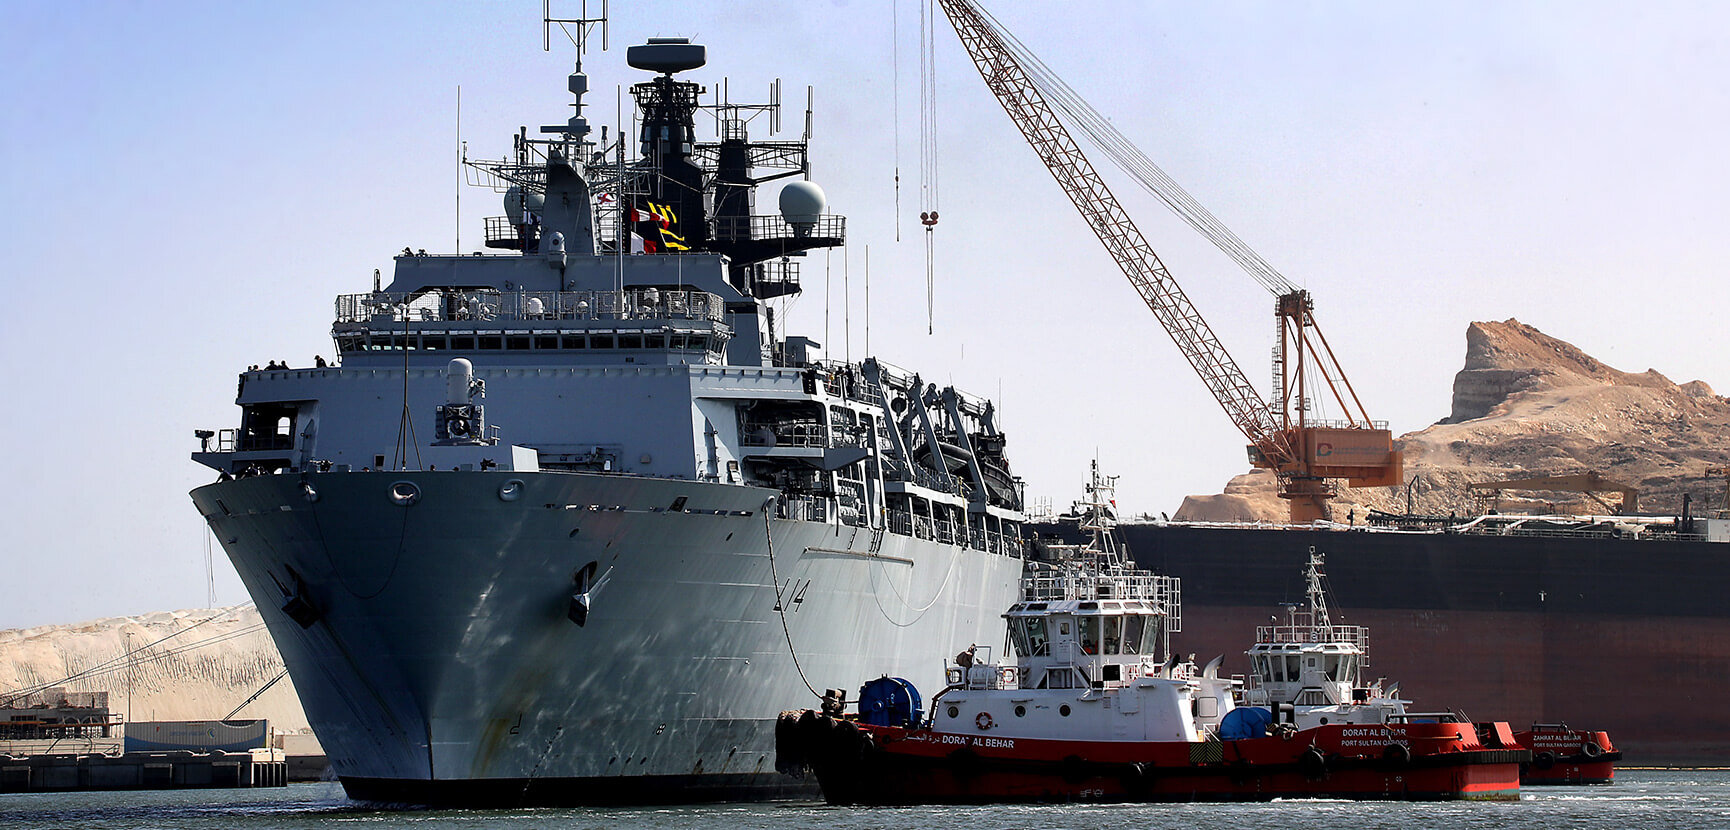 A tale of two exercises – Royal Navy reaching its operational peak for 2018